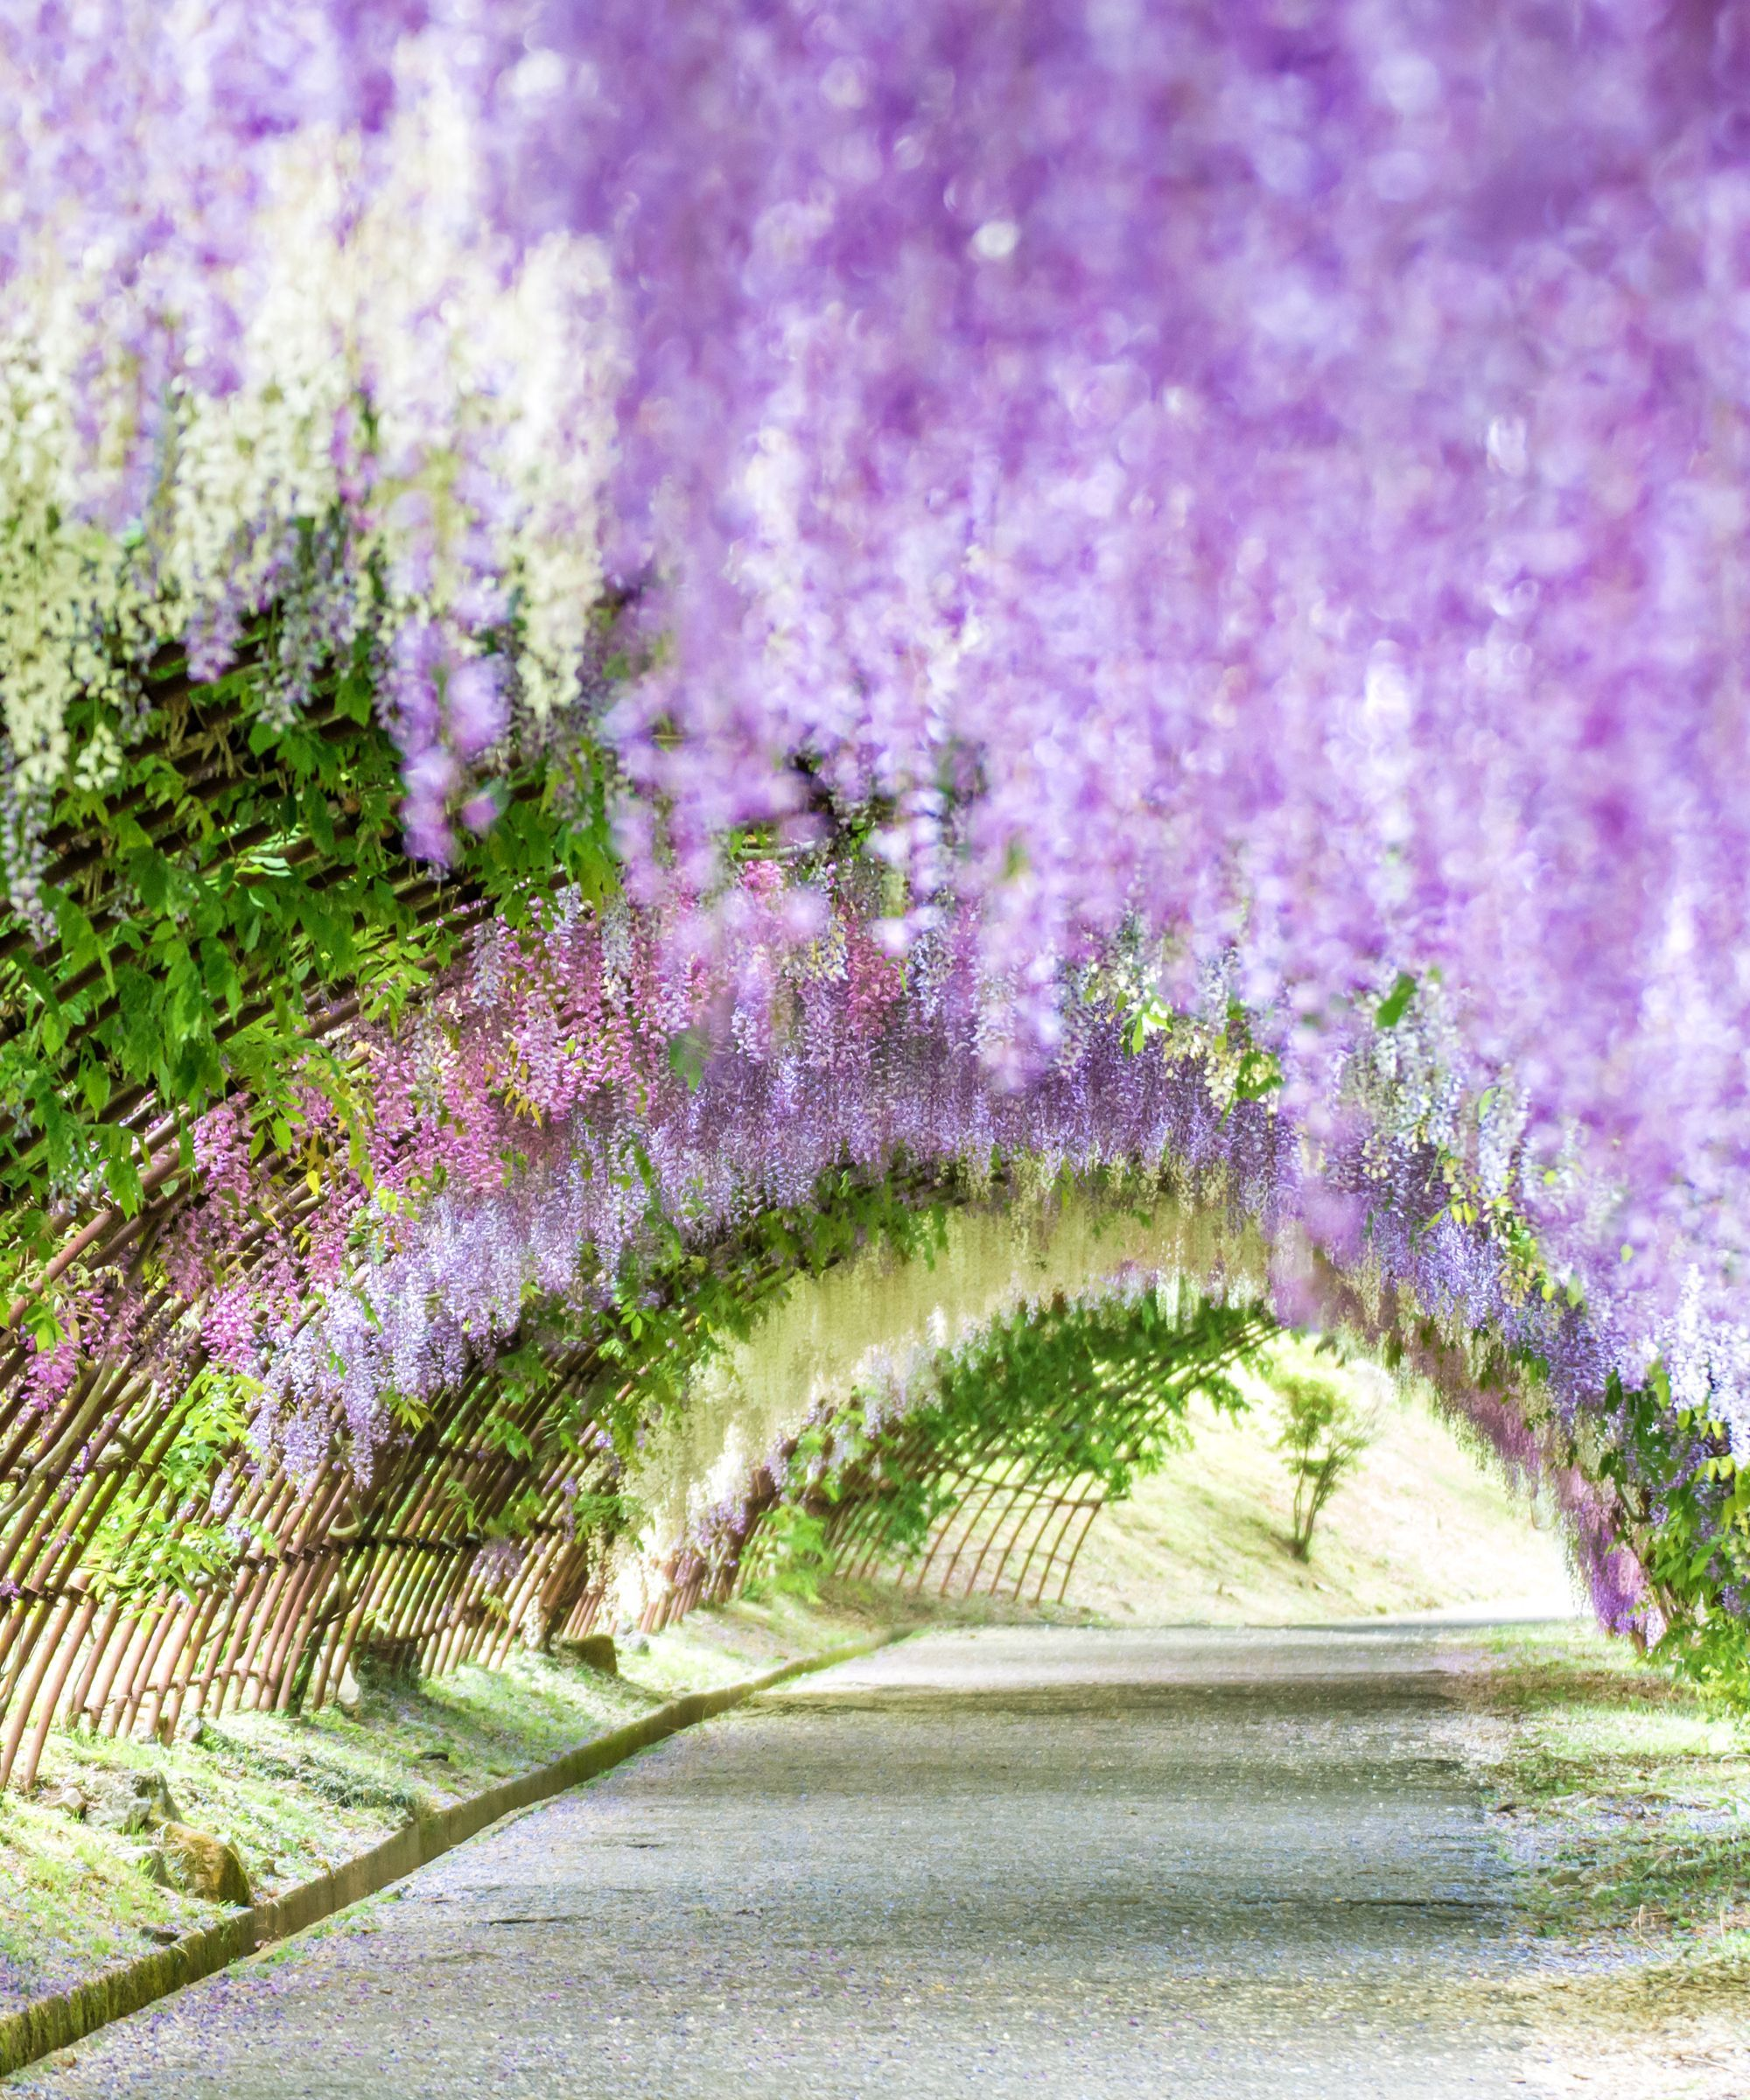 Forget Cherry Blossoms Japan S Wisteria Gardens Are A Technicolor Must See Wisteria Garden Japan Flower Garden Cherry Blossom Japan